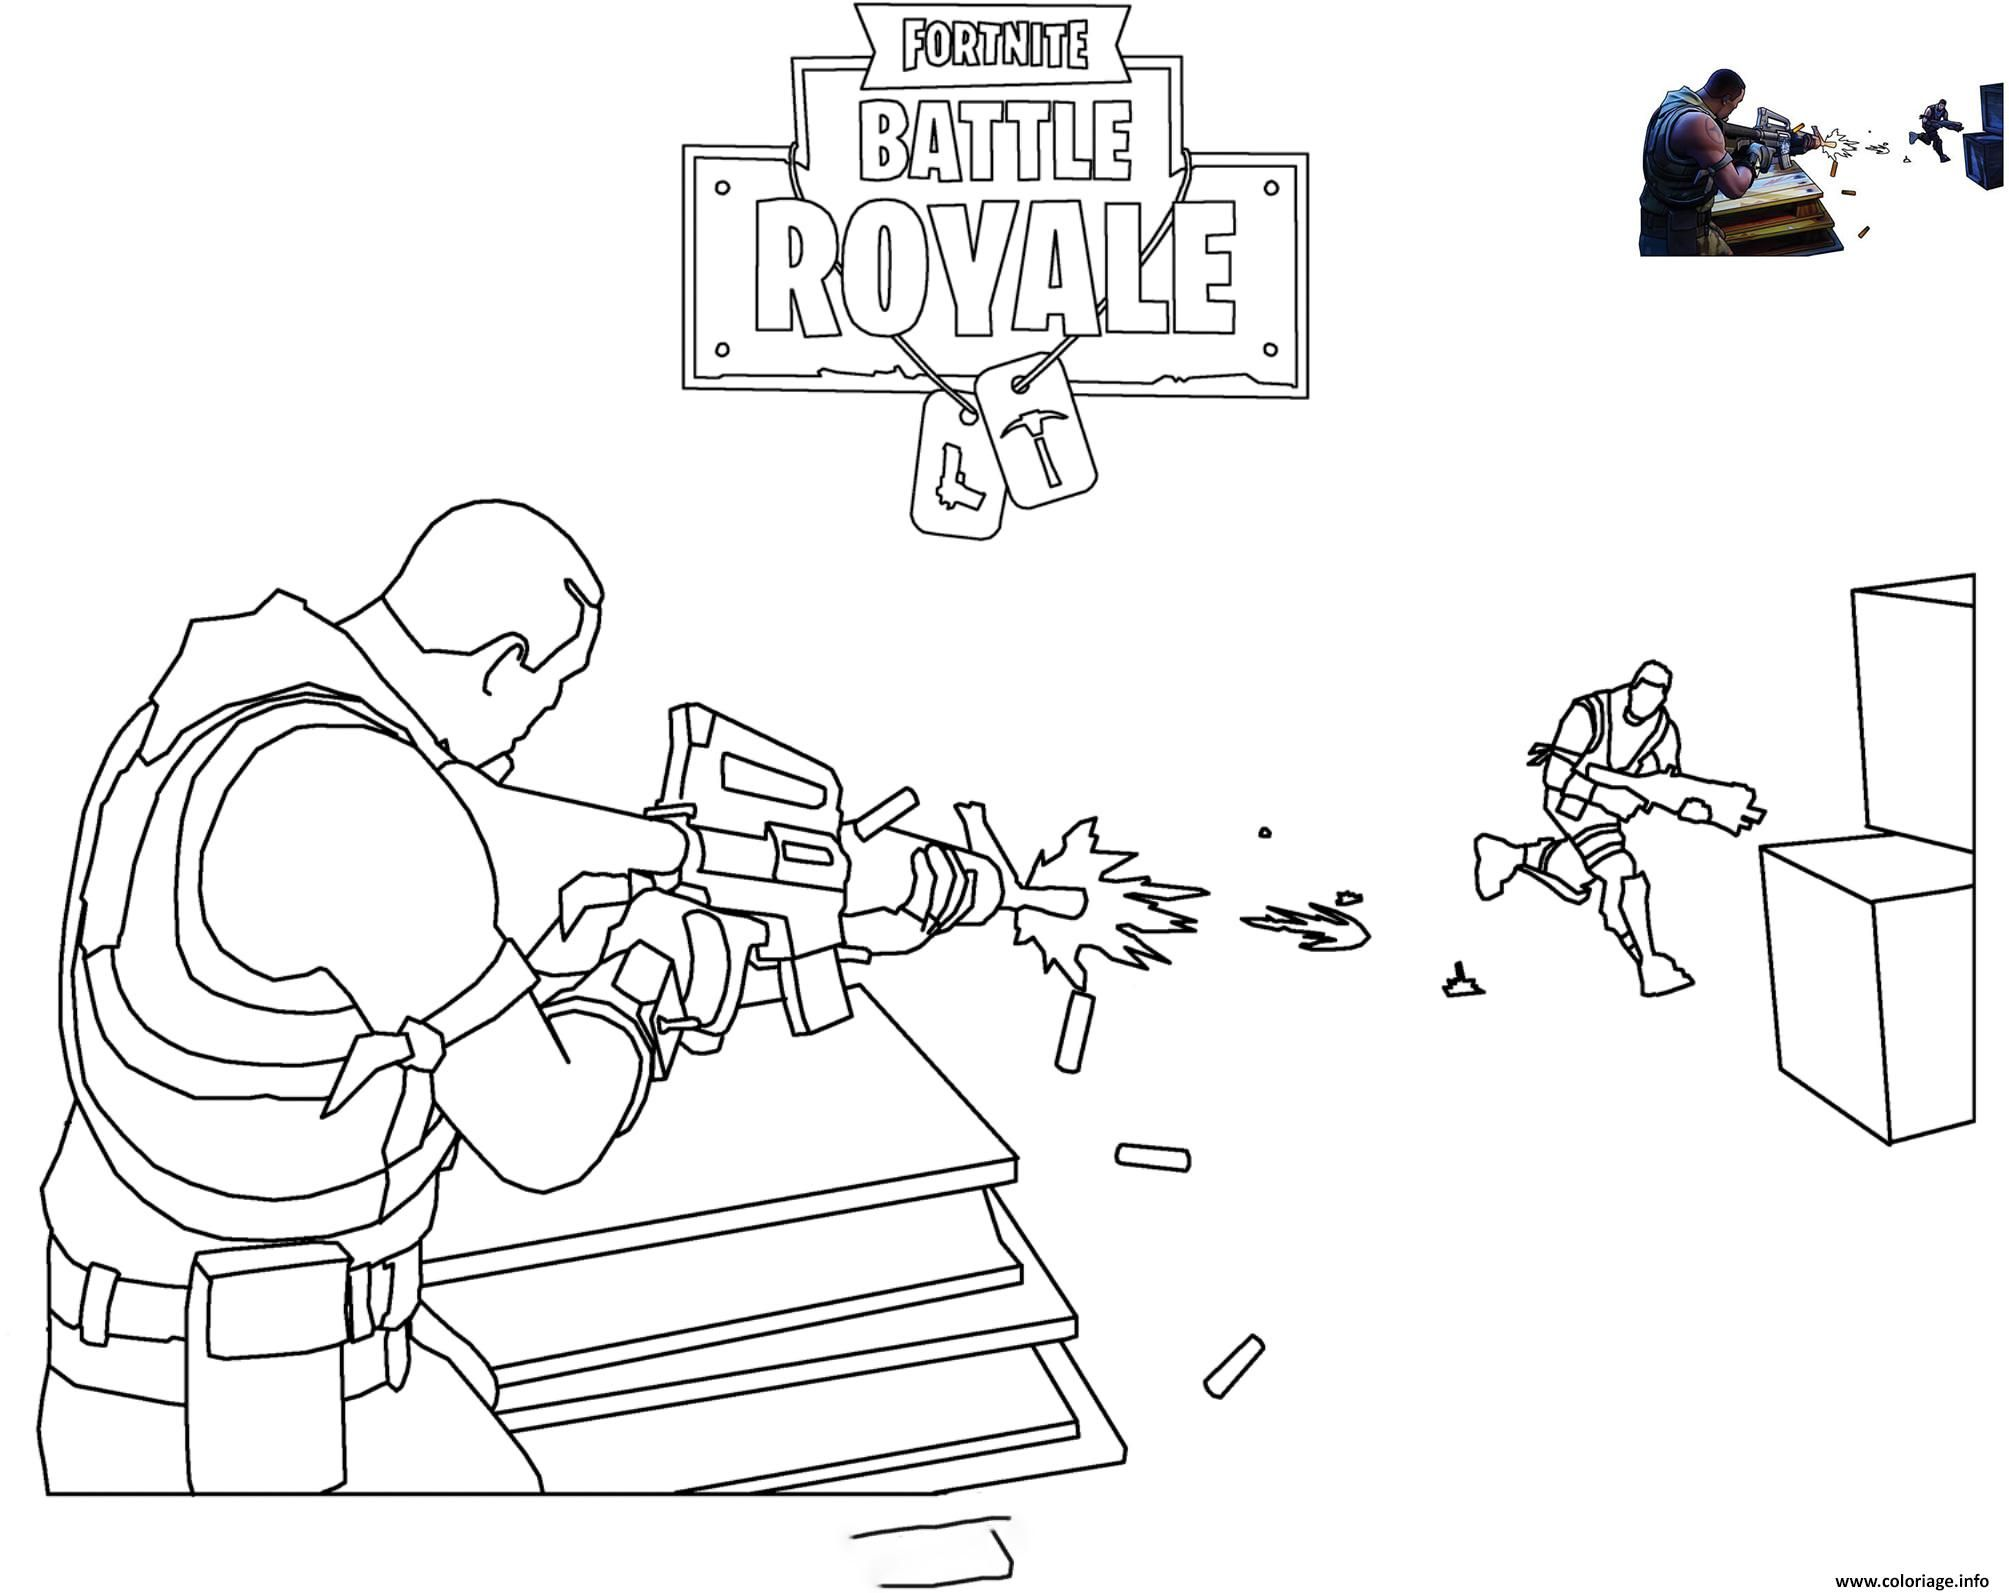 Coloriage Fortnite Teknique